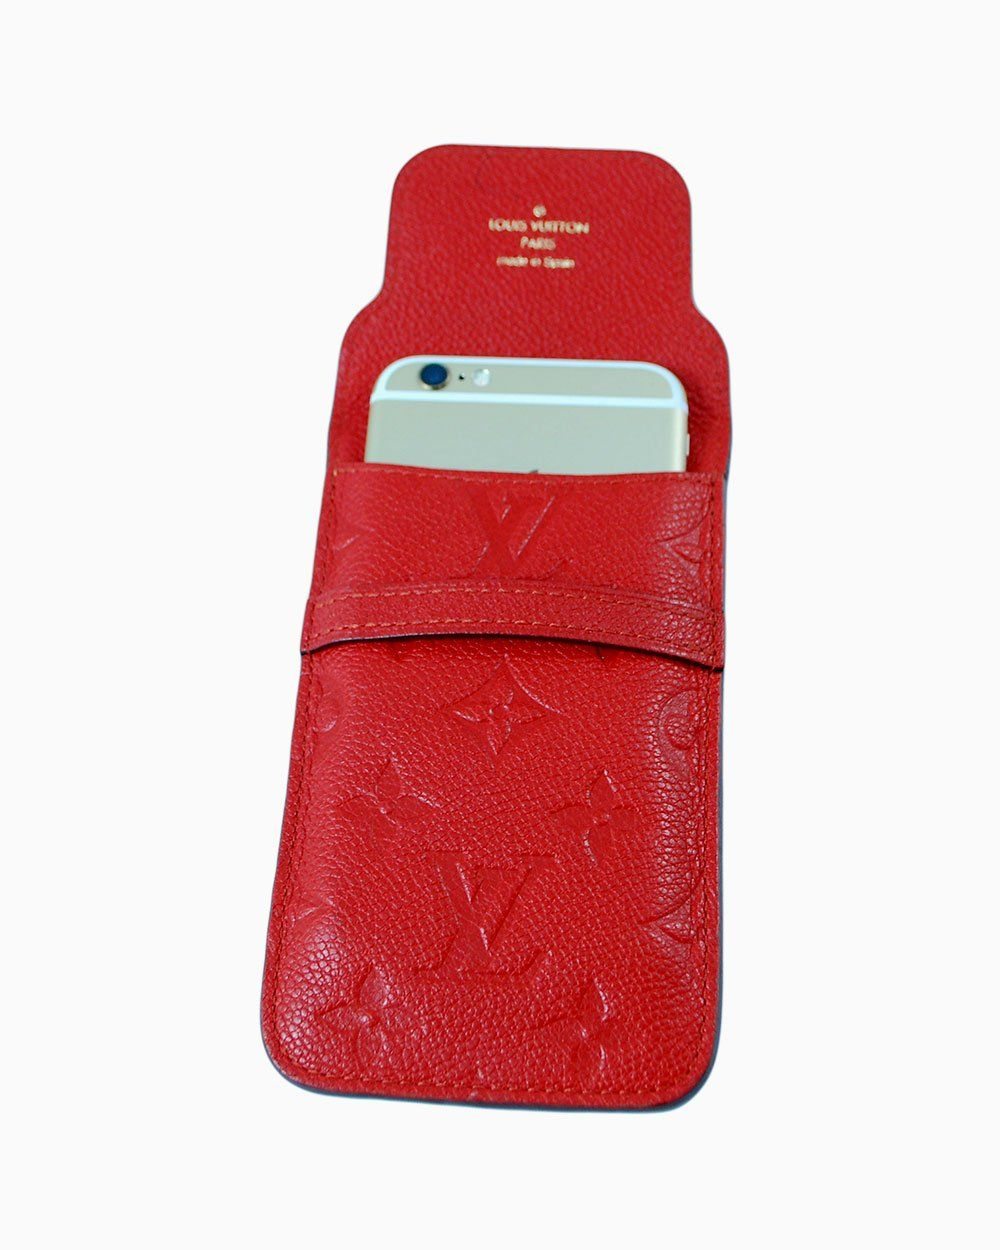 Capa Iphone Louis Vuitton Vermelha